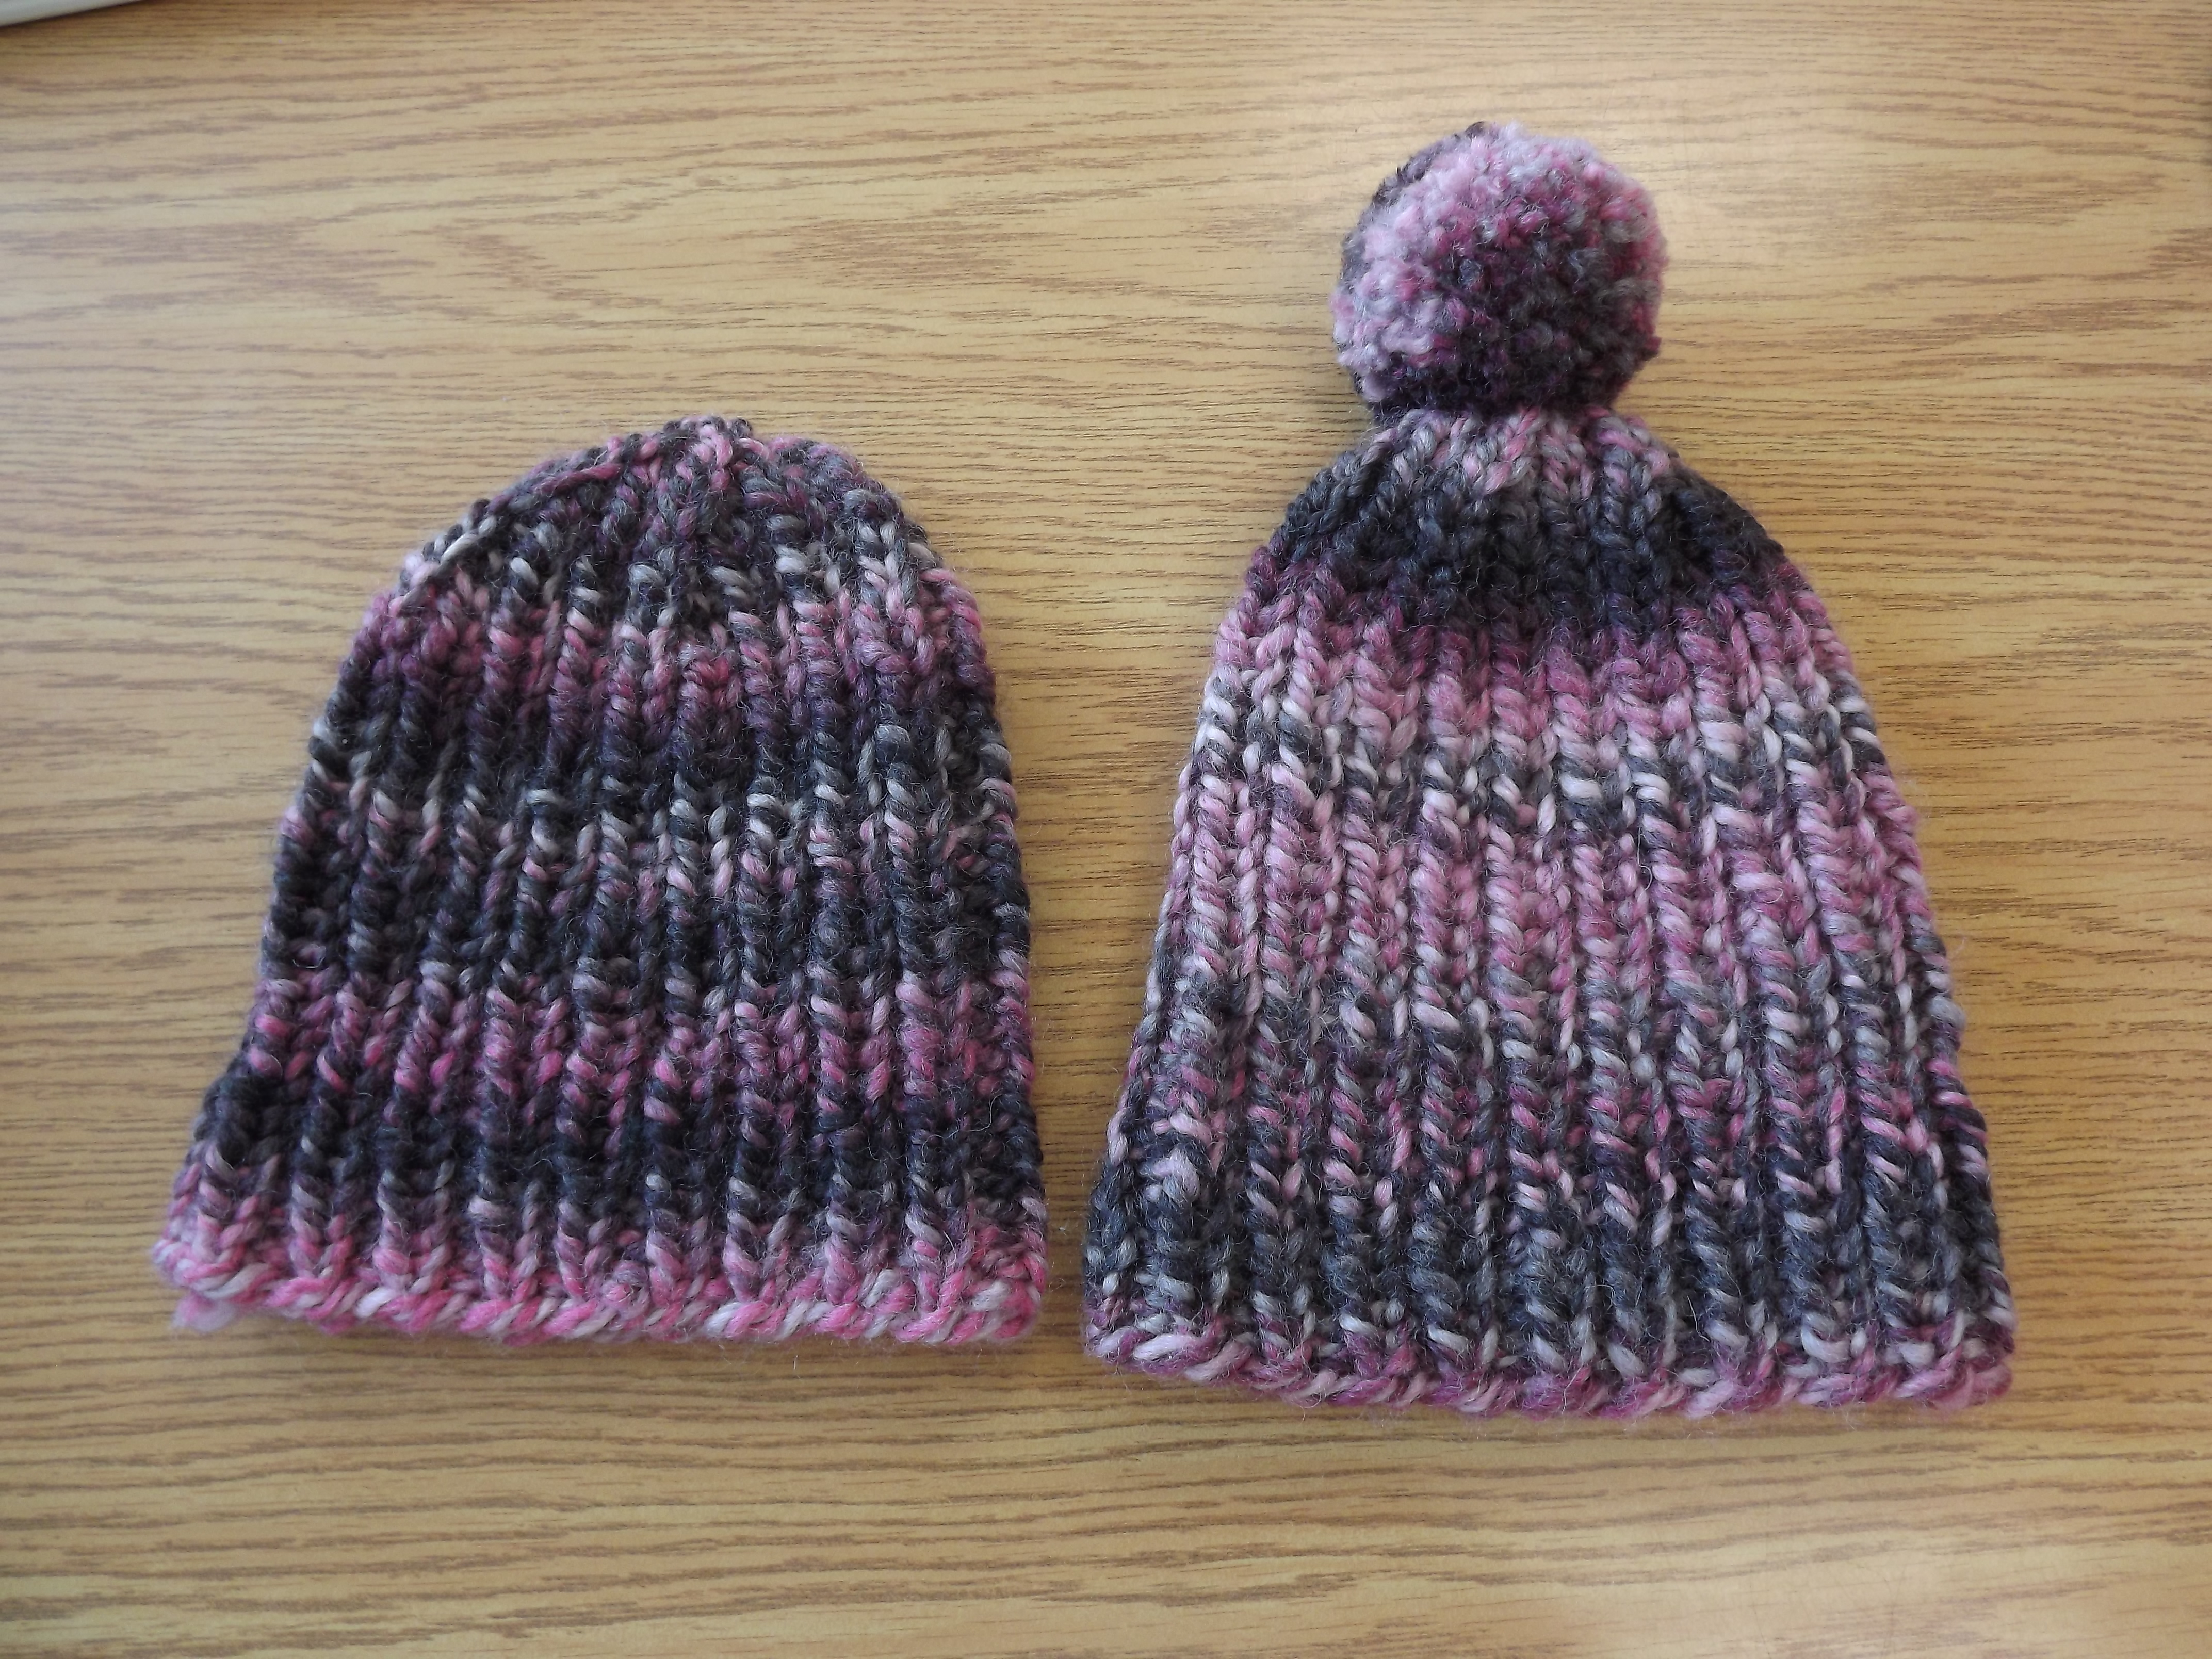 Knitted Hats Patterns Free Chunkybulky Ribbed Hat Pattern True North Yarn Co